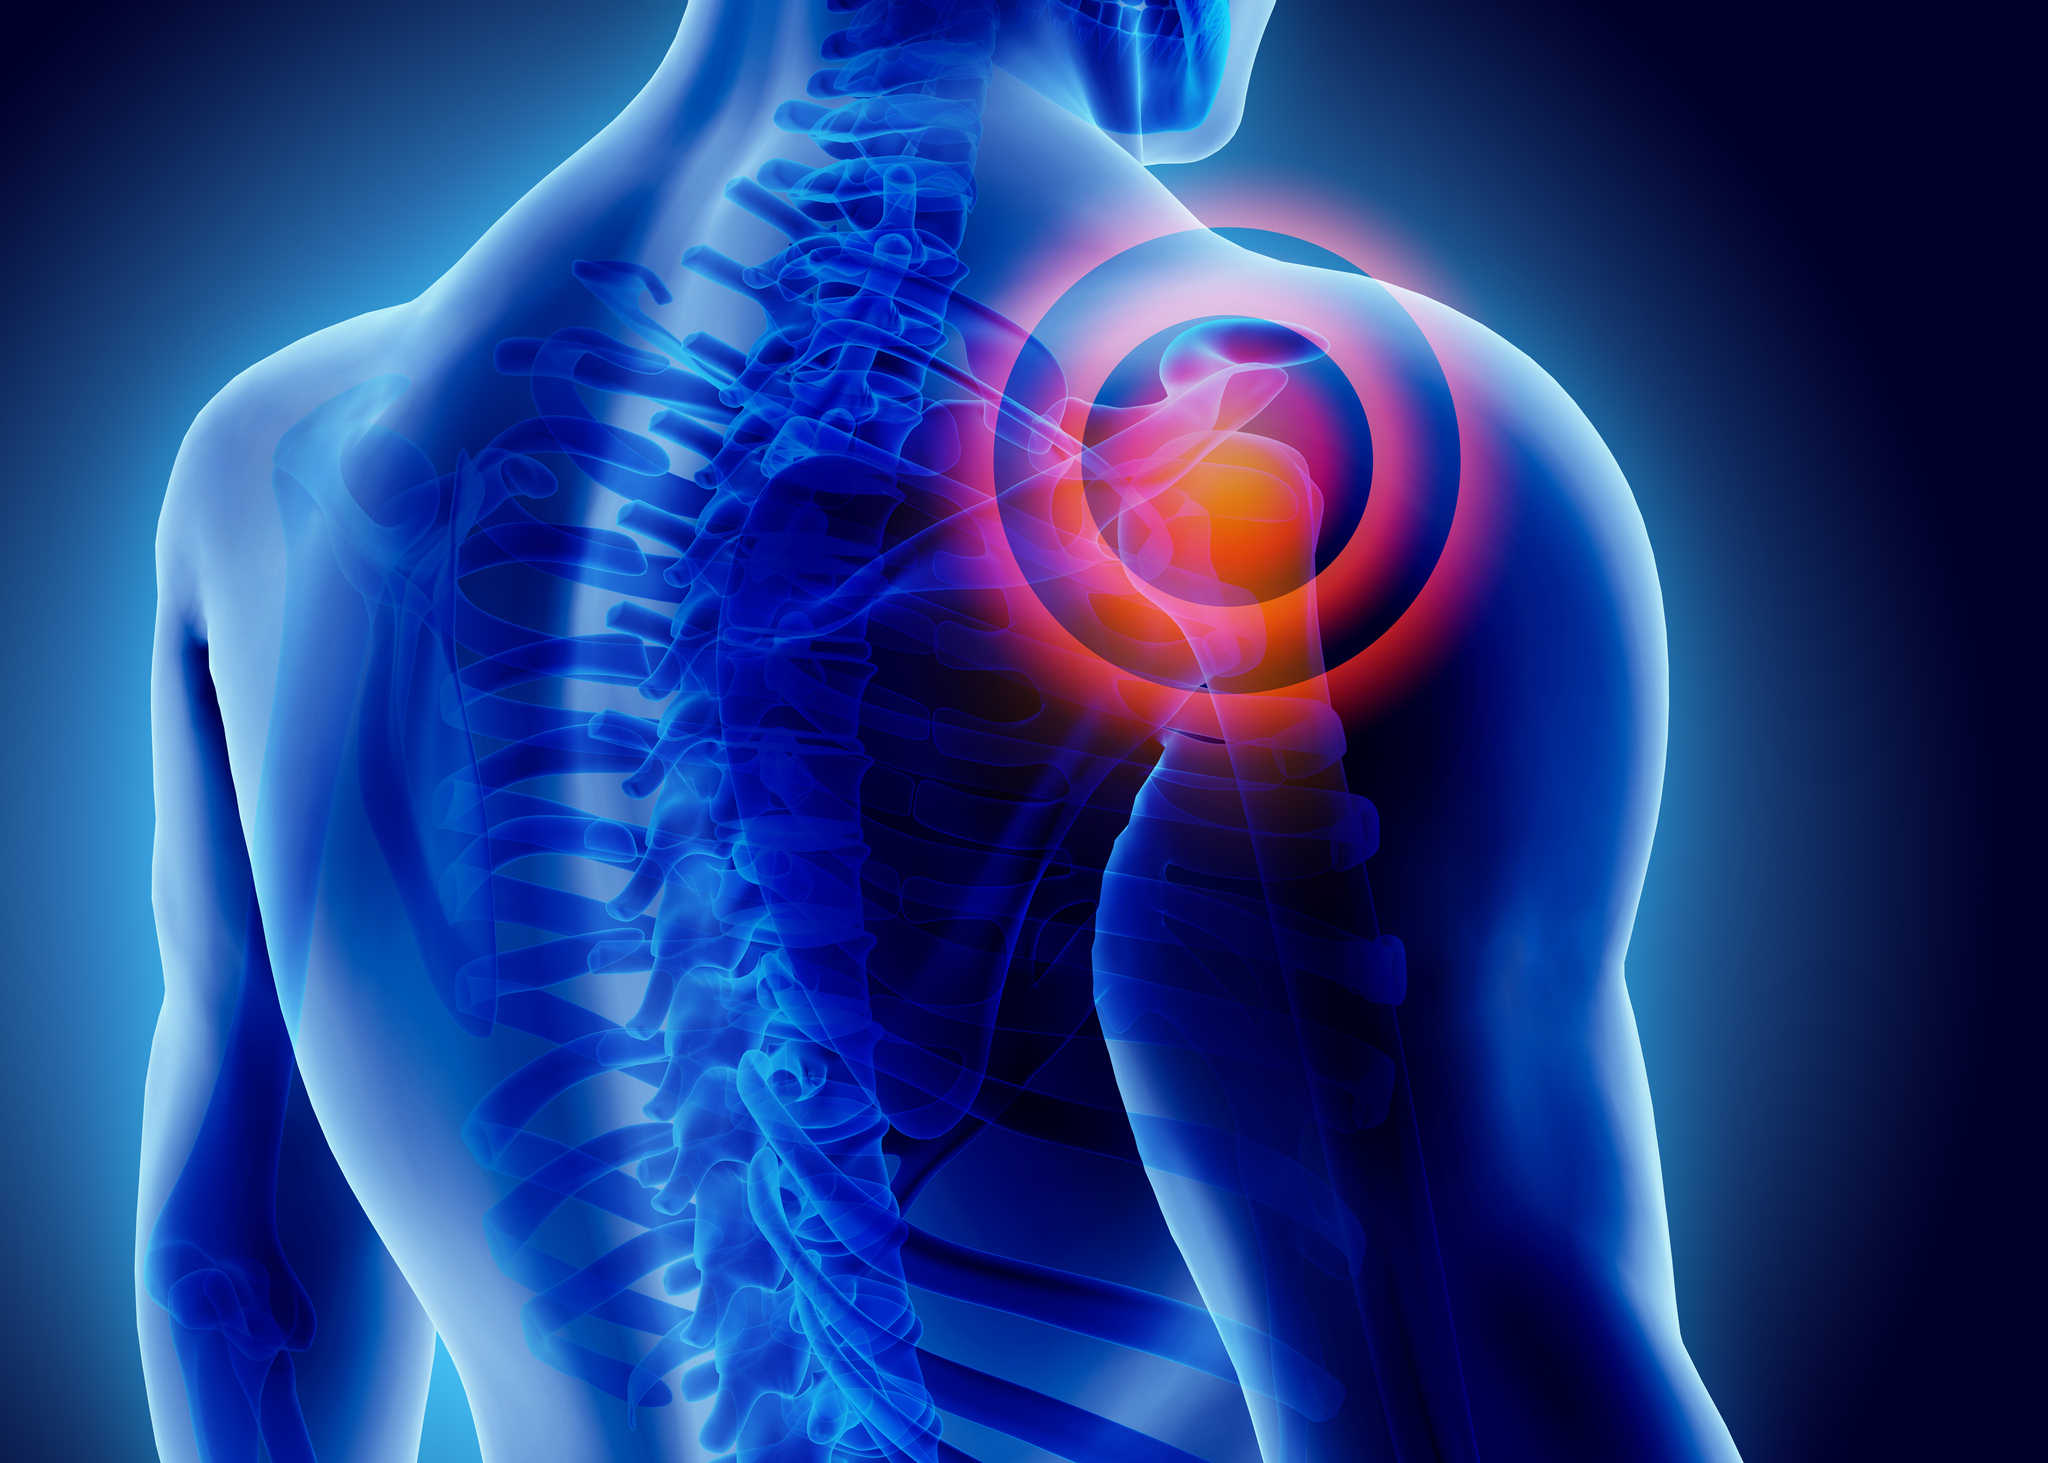 Orthopedic picture of a shoulder x-ray, painful shoulder.